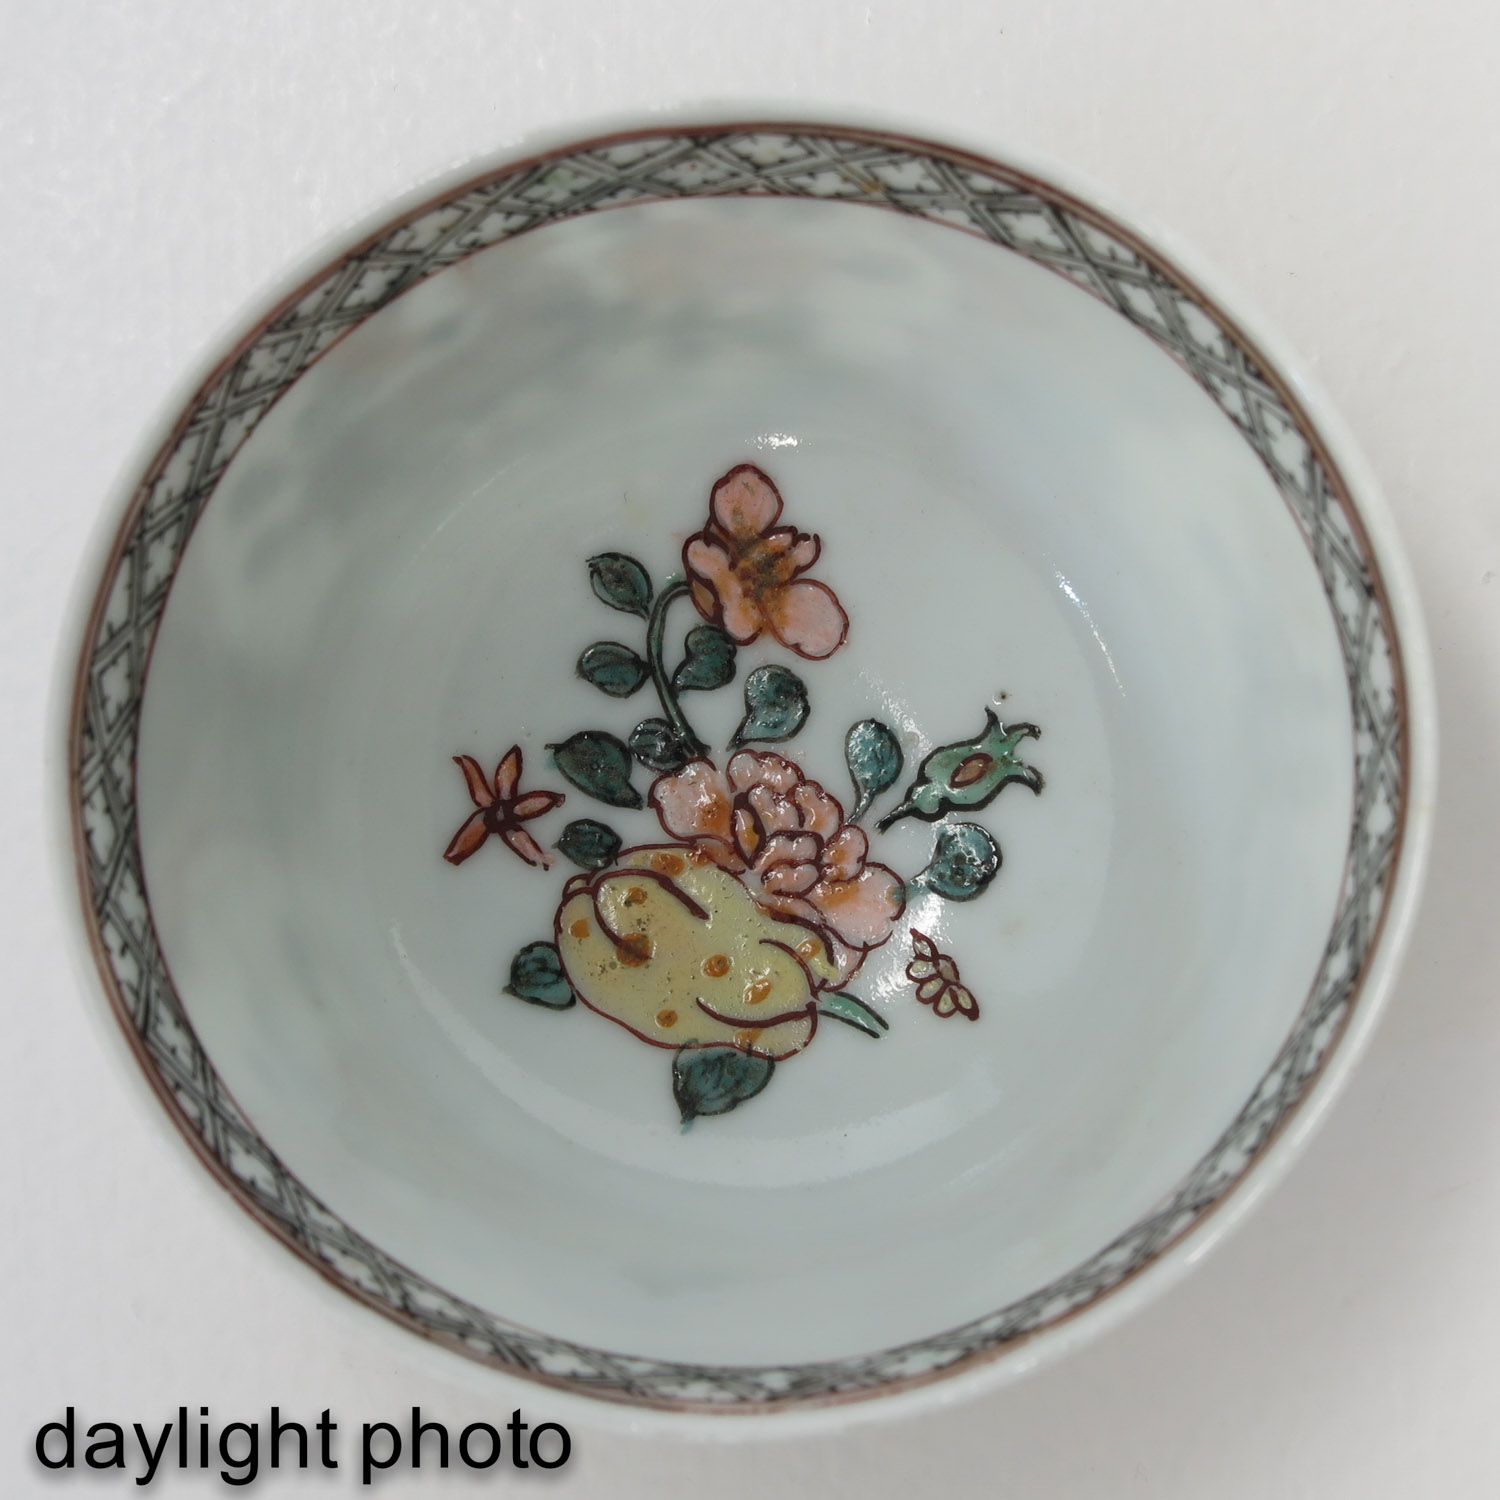 A Rooster Decor Cup and Saucer - Image 9 of 10